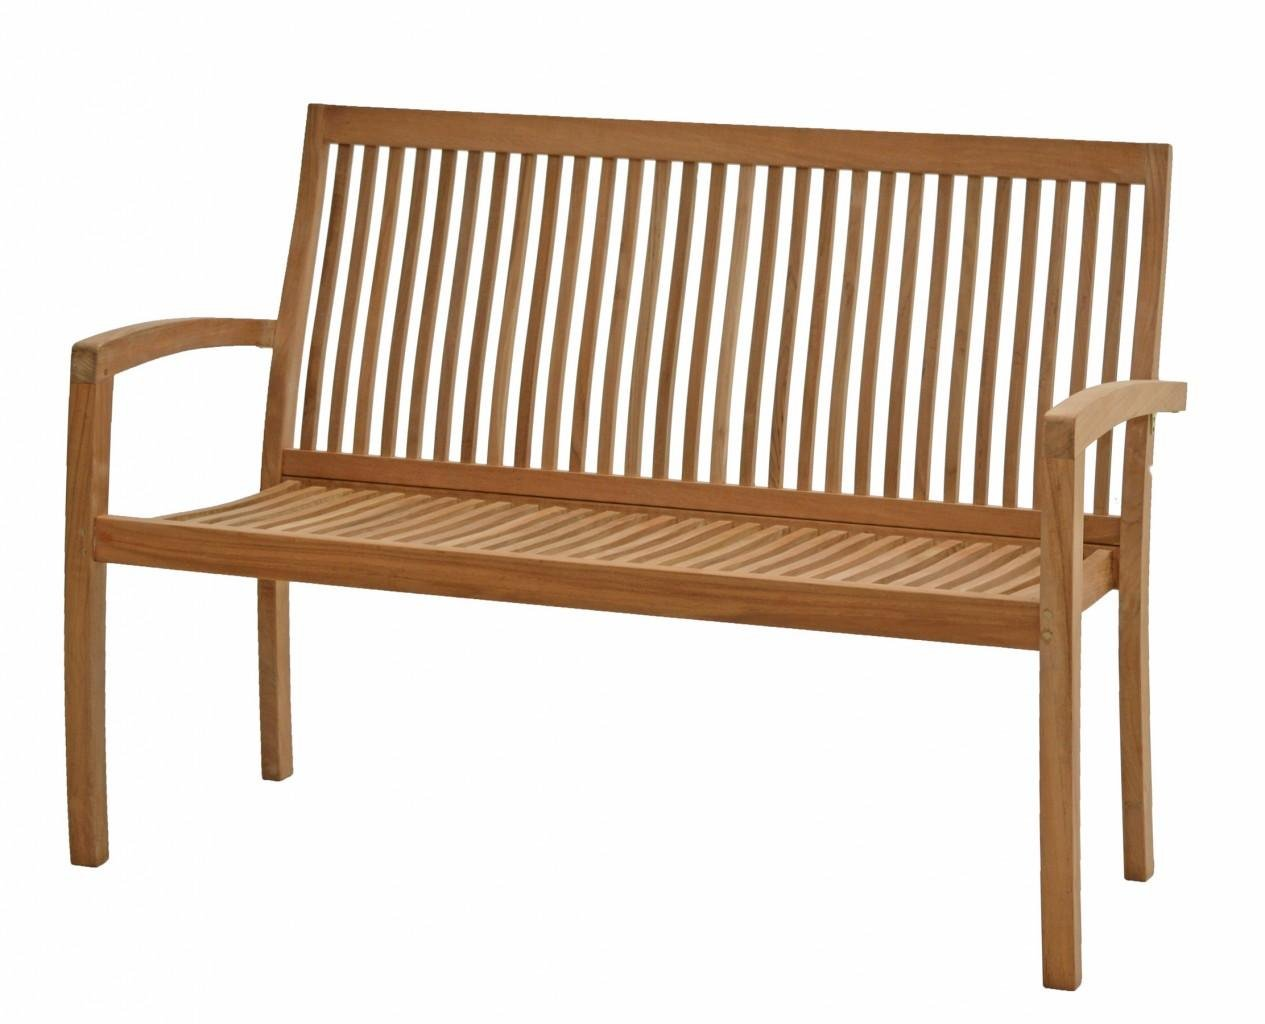 Ploß Outdoor furniture Stapelbank, Memphis, natur, 60x130x90 cm, 0,3073 ml, 1020890